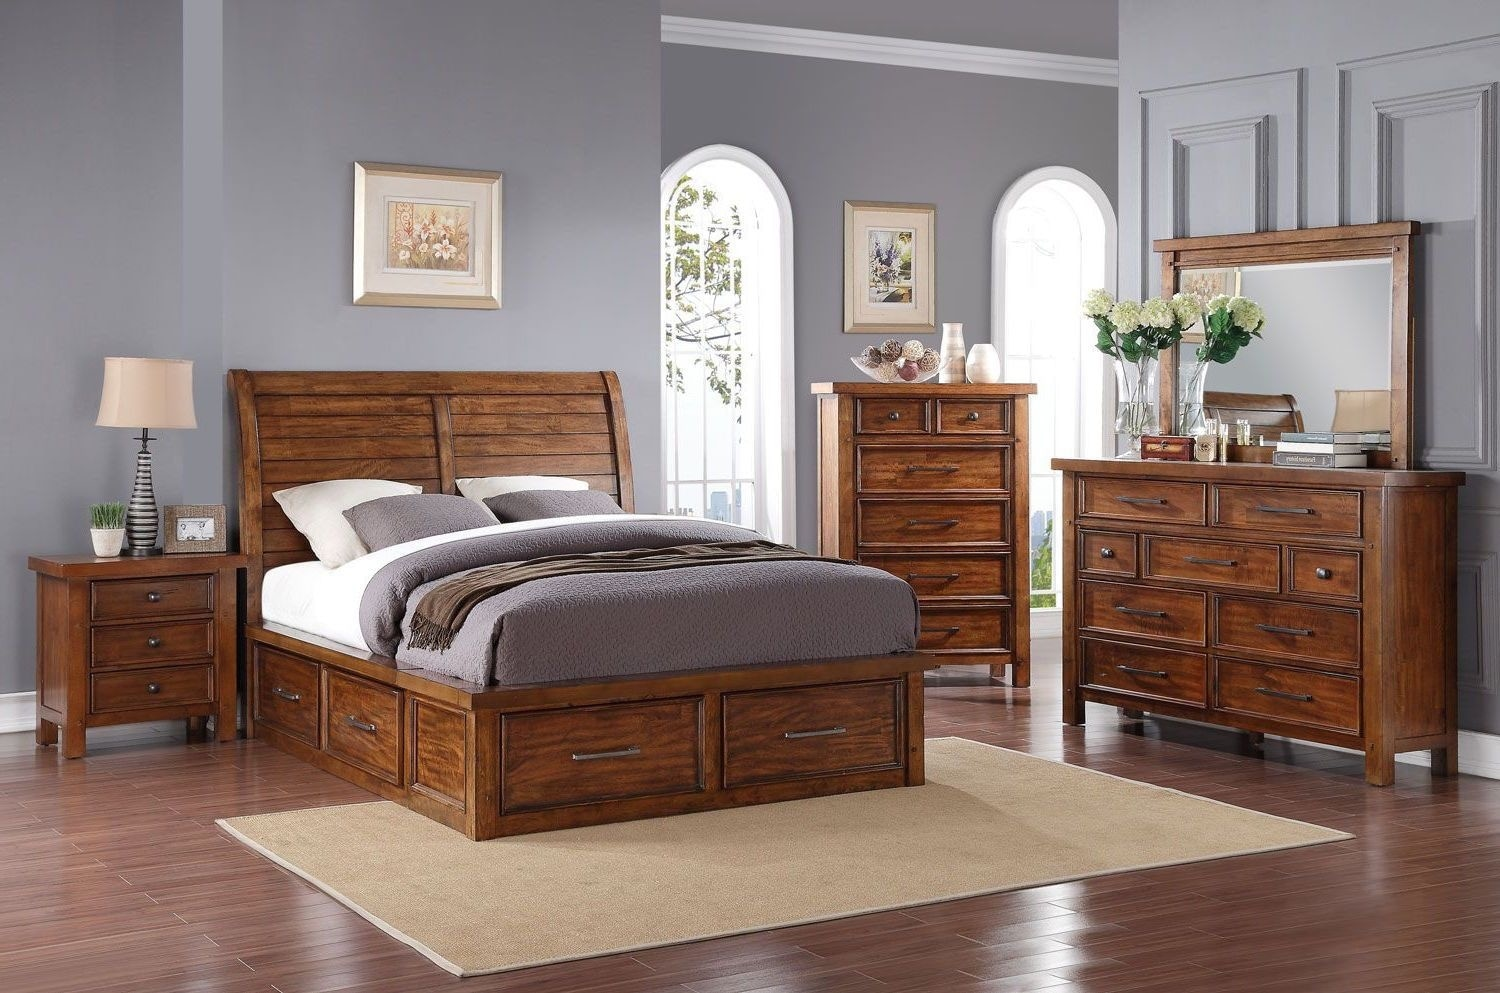 Sonoma 7-Piece Queen Storage Bedroom Package – Medium Brown